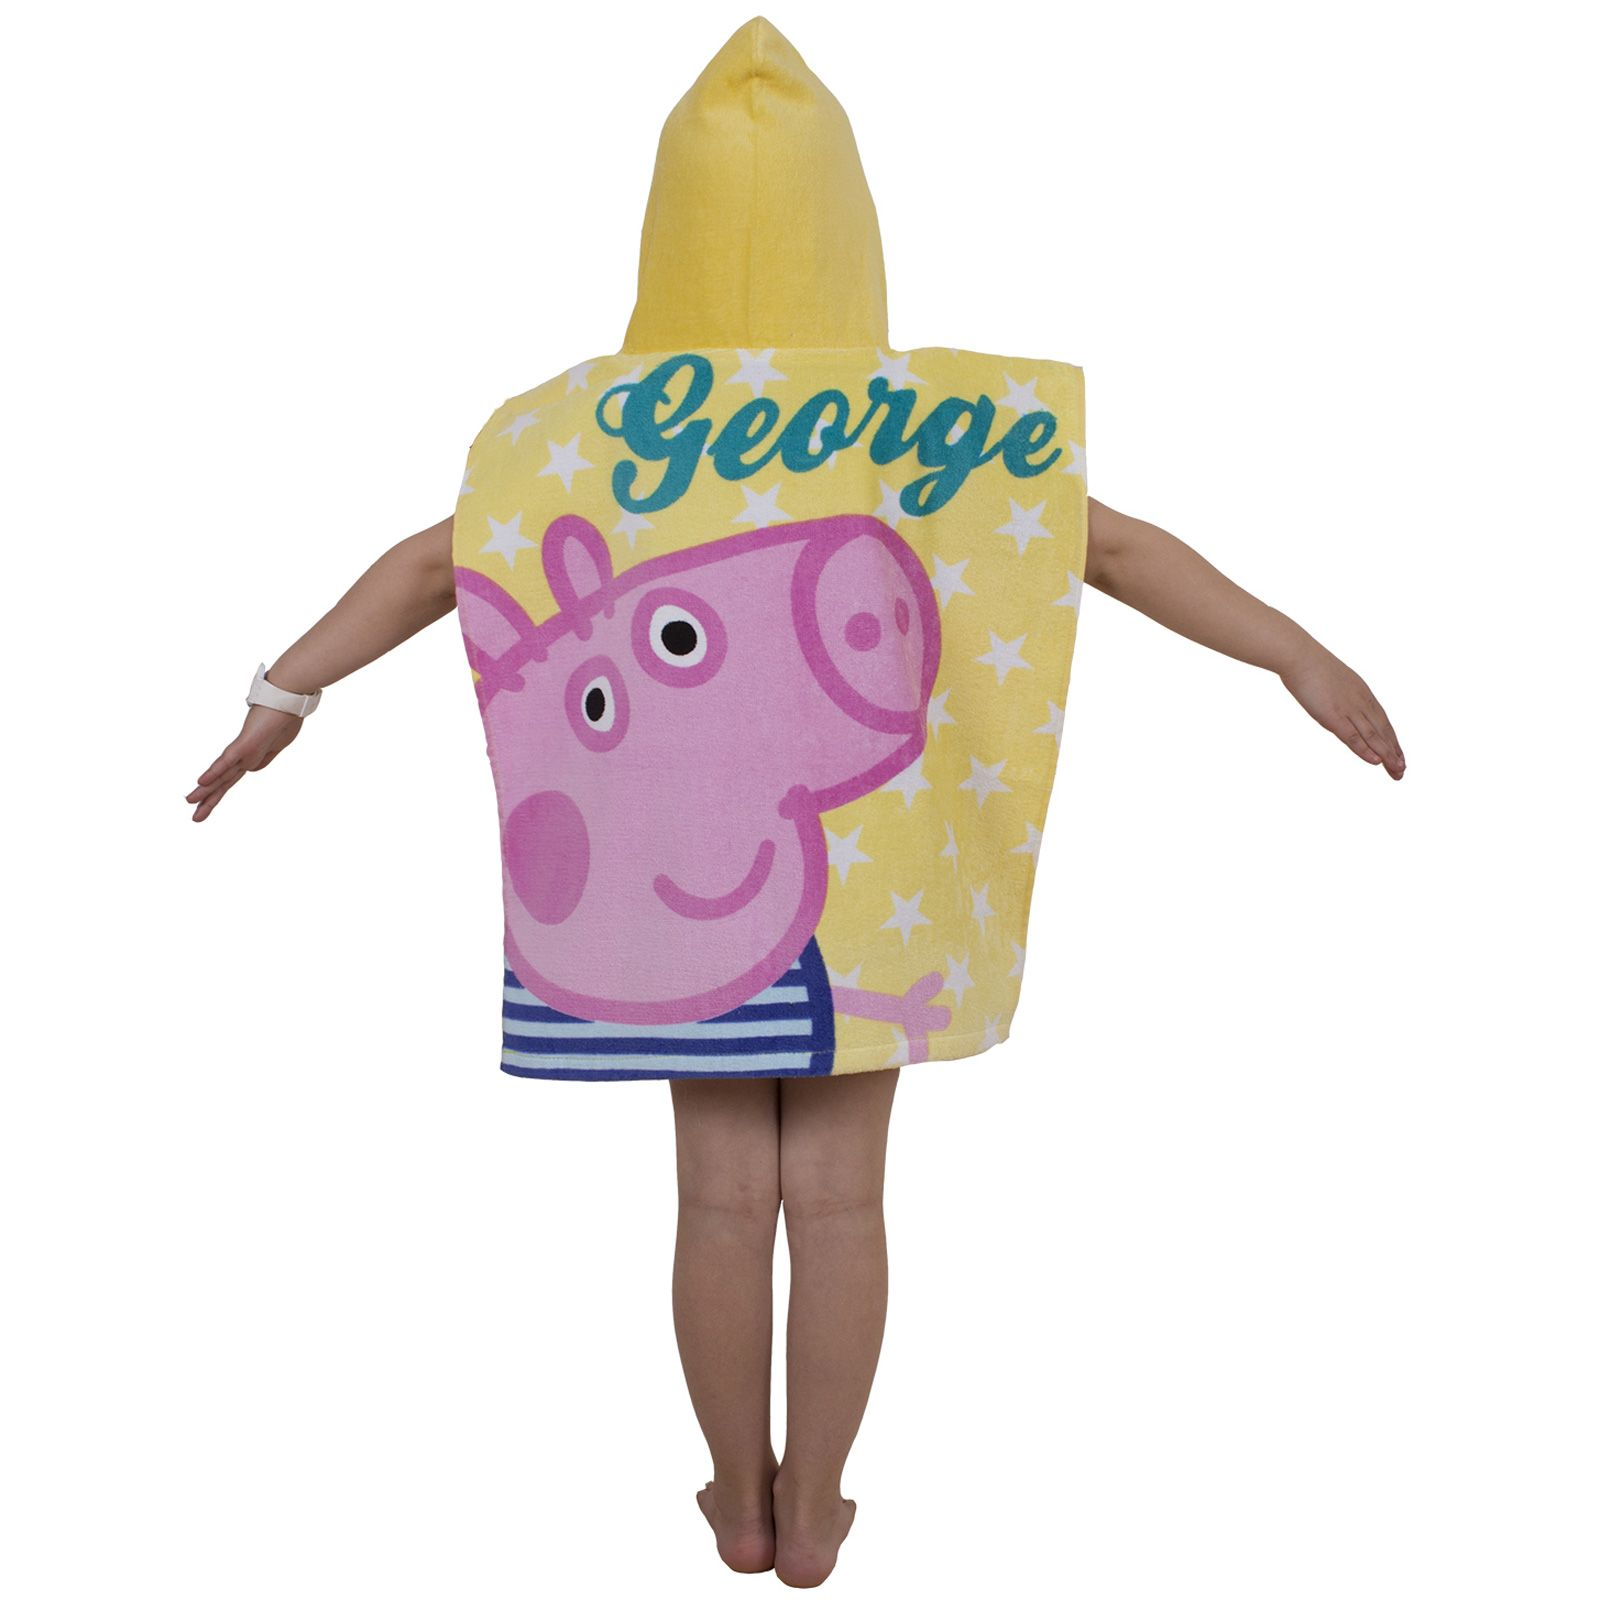 Peppa-Pig-George-100-Cotton-Beach-towels-amp-Hooded-Poncho-Boys-Girls-Kids miniature 14